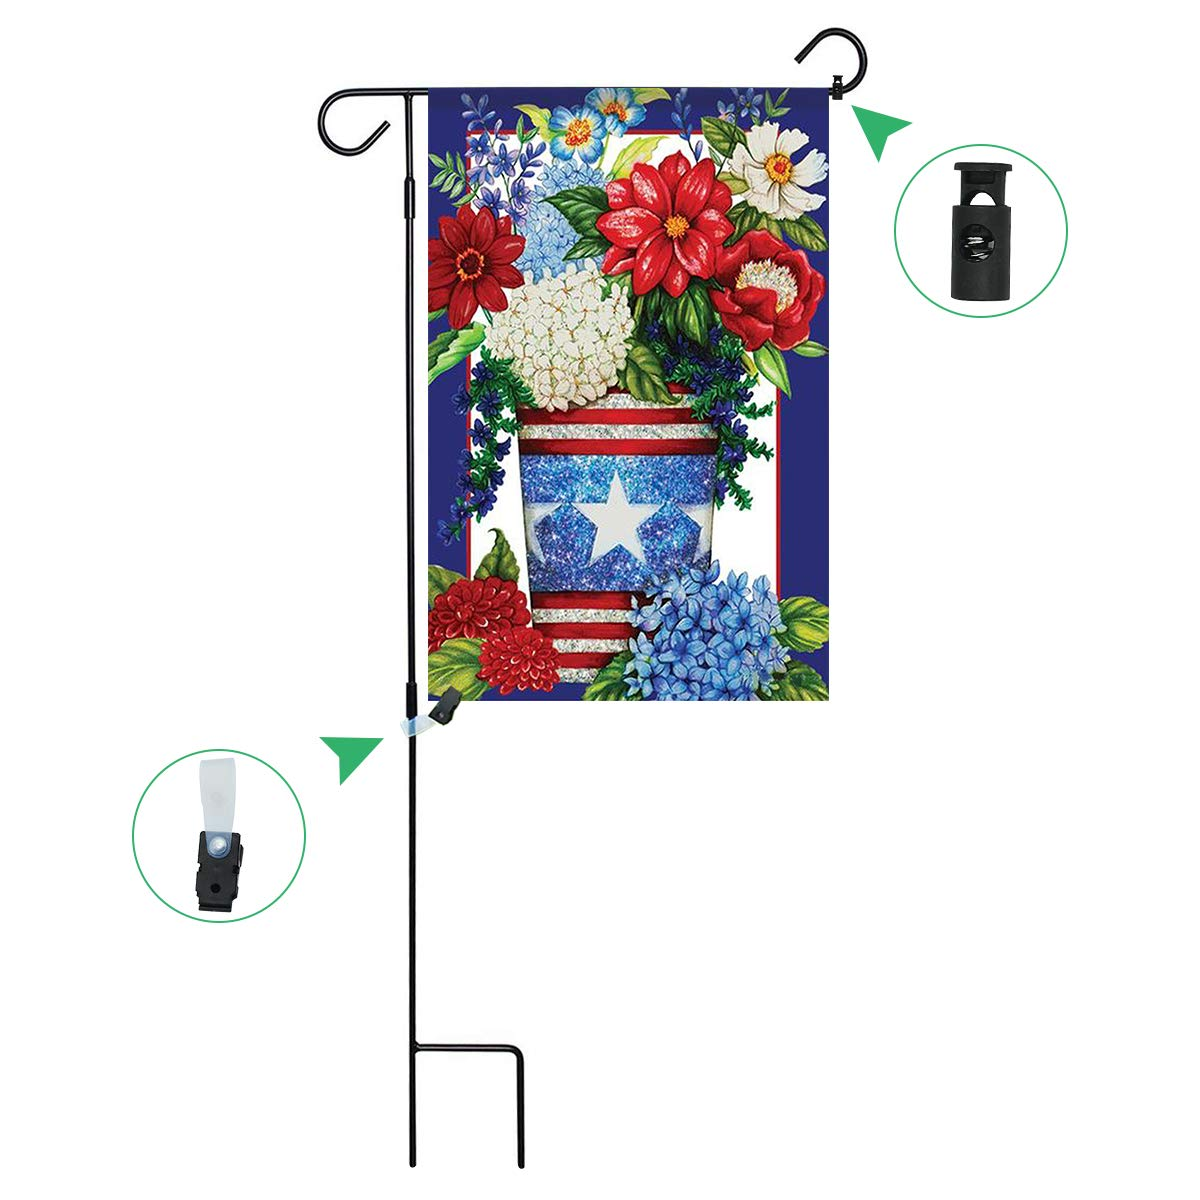 Sunton Patriotic Flowers Double-Sided Garden Flag, Garden Flag Pole with Flags Stand Rubber Stopper and Anti-Wind Clip for Home Outdoor Decoration 12.5x18 inch